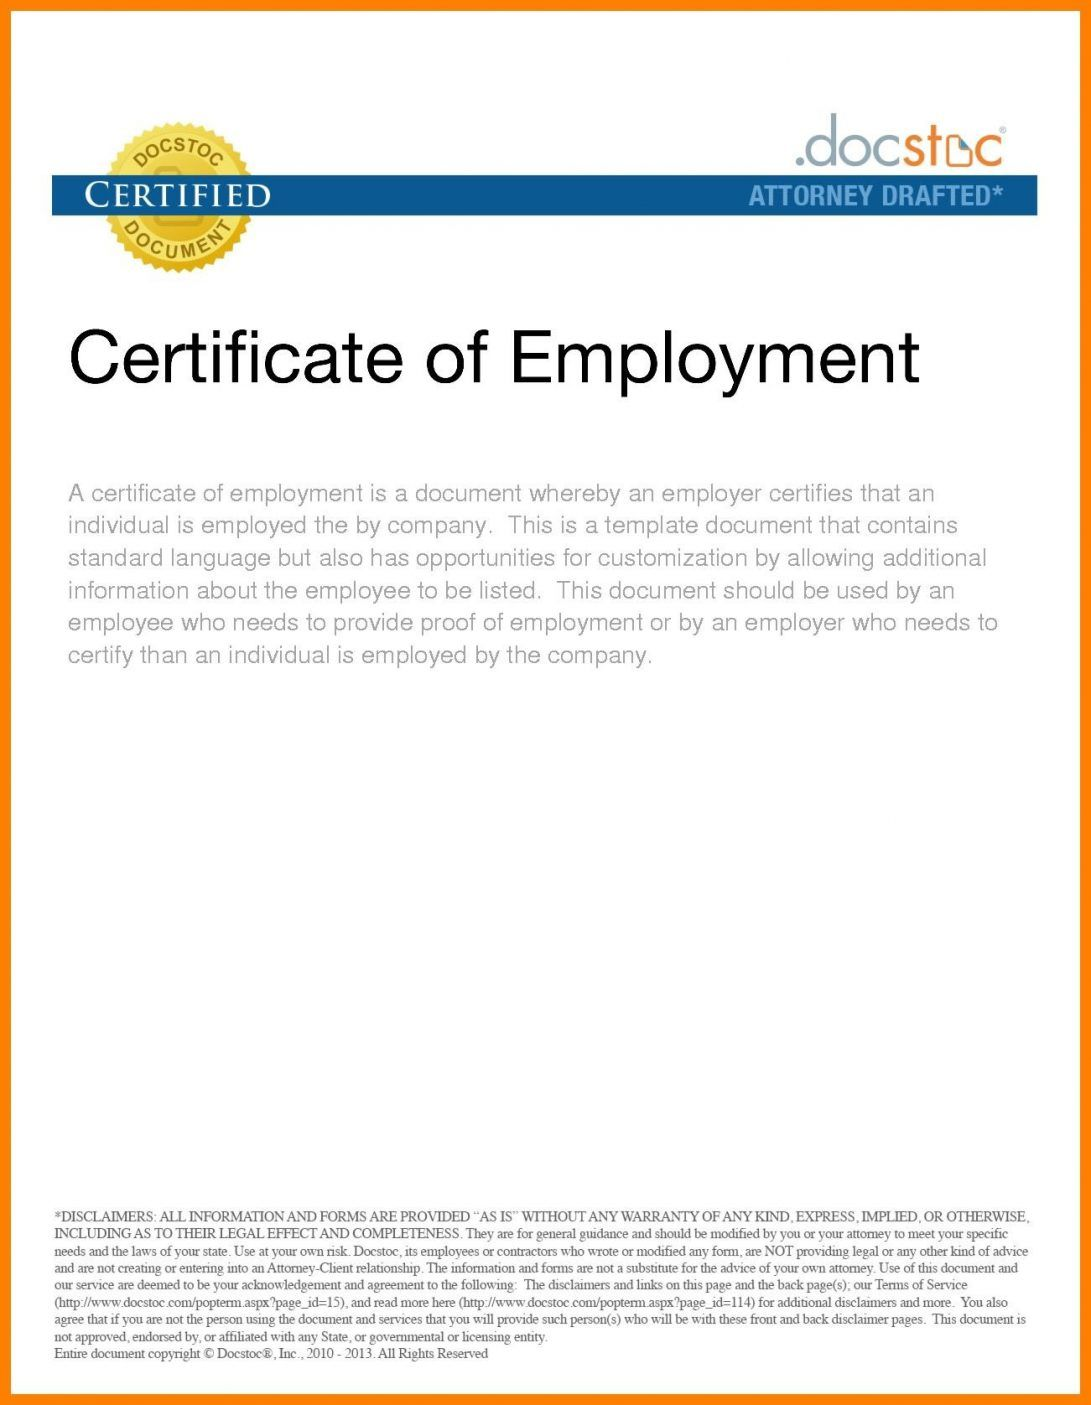 016 Sample Certificate Of Employment Certificates Stunning